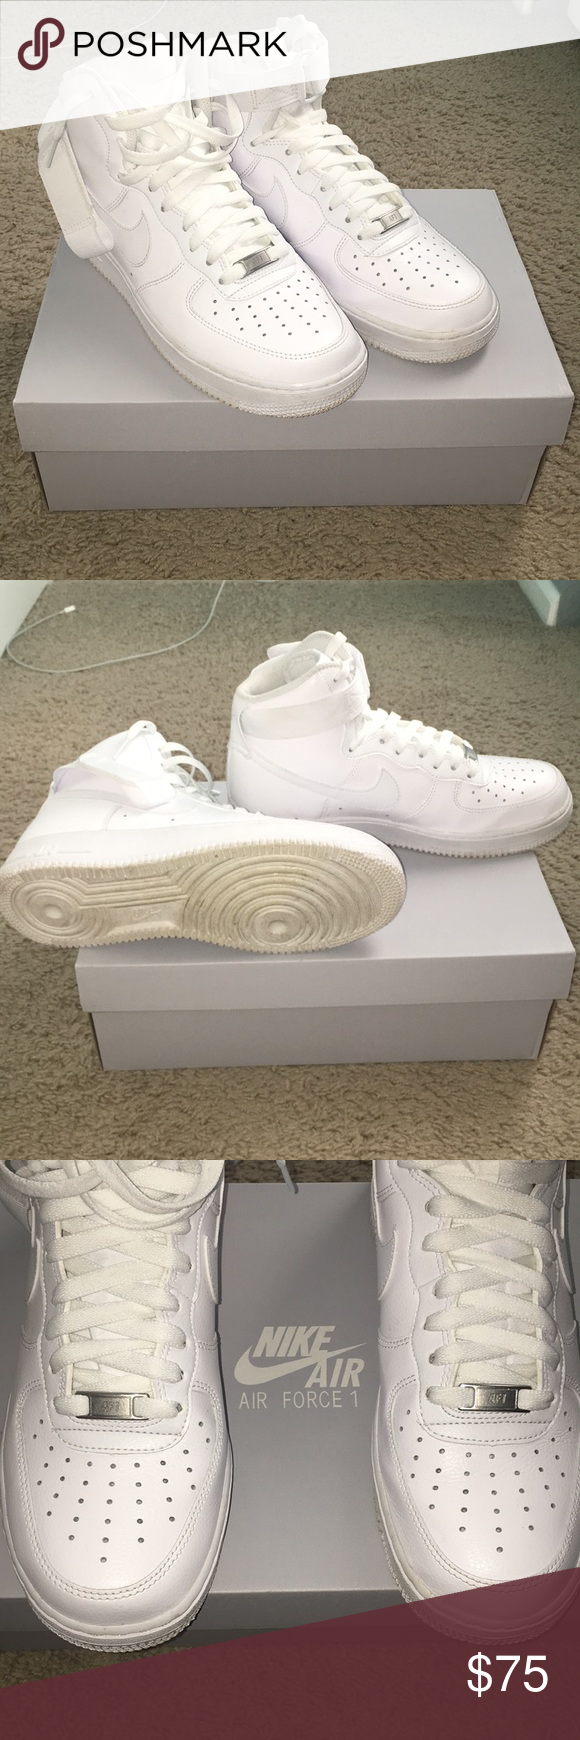 separation shoes 4169f 51a5c White Nike Air Force 1 (One) Hi (High) Authentic All White ...